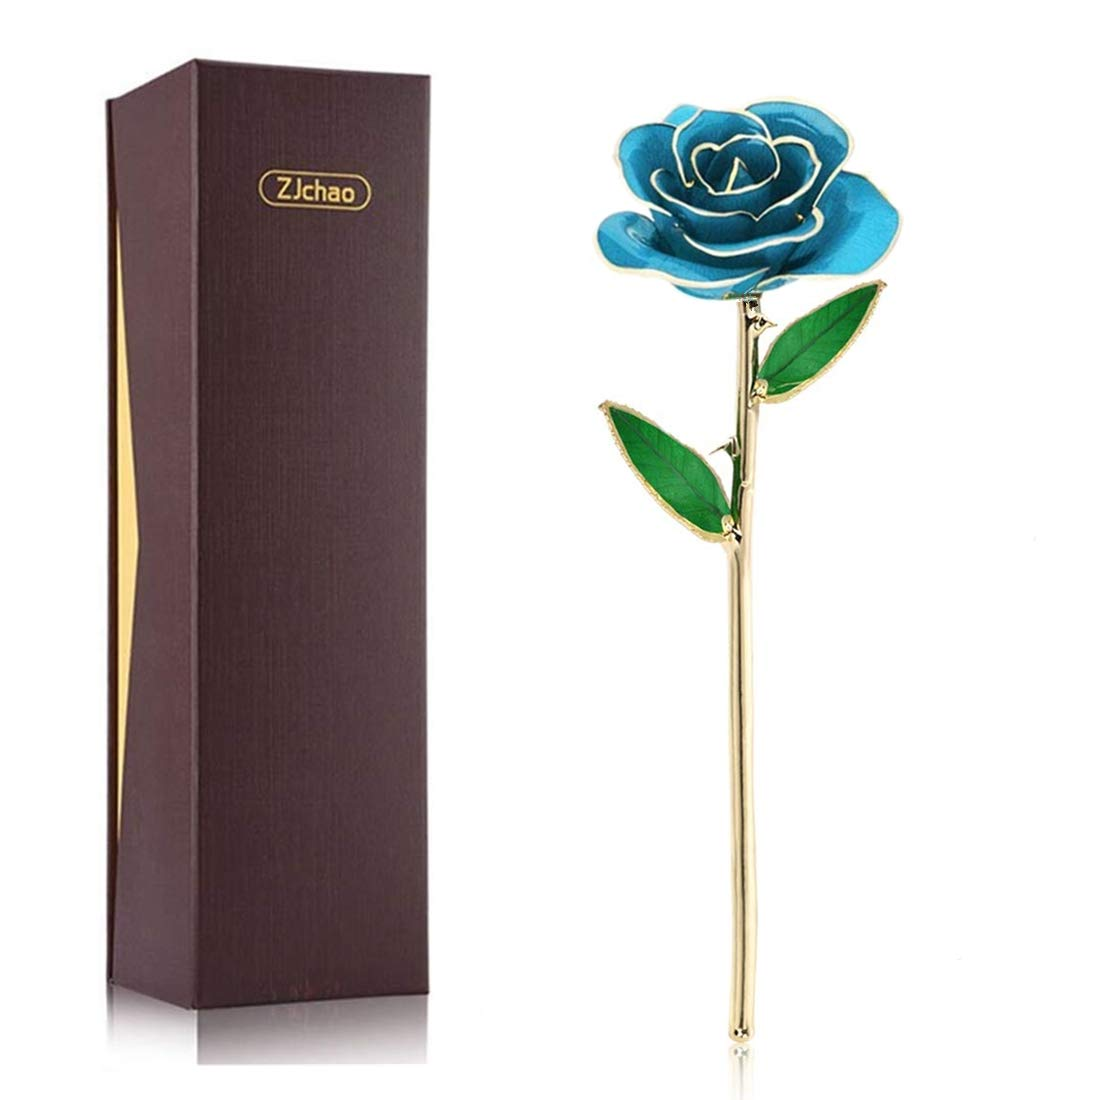 ZJchao 24K Blue Rose Gift for Her Mother's Day, Love Forever Real Gold Plated Eternity Rose Flower Gift for Her, Best Present for Anniversary, Wedding, Birthday, Graduation (Blue)